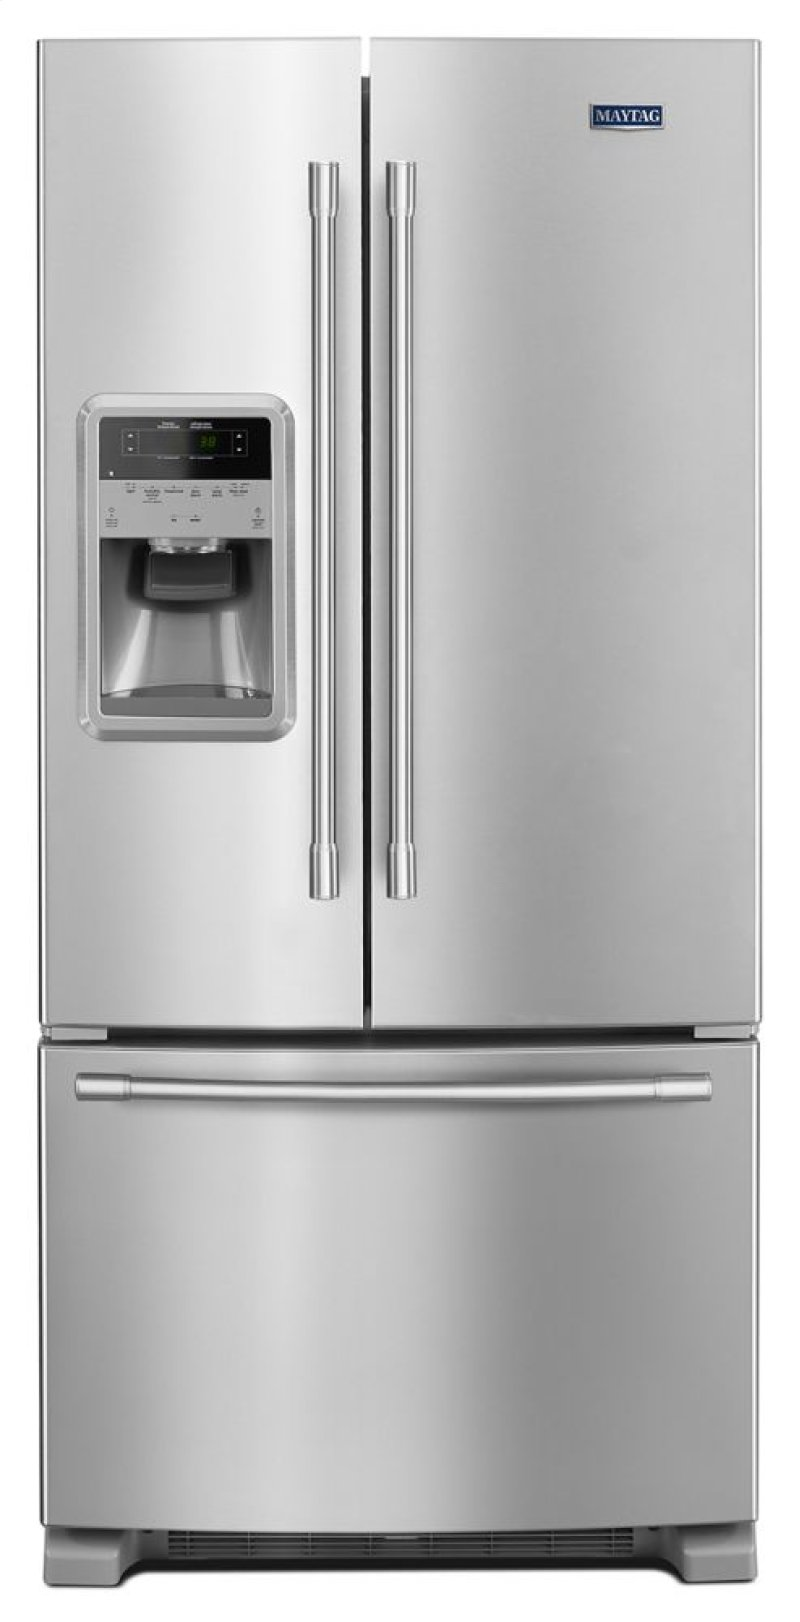 Mfi2269frz In Fingerprint Resistant Stainless Steel By Maytag In